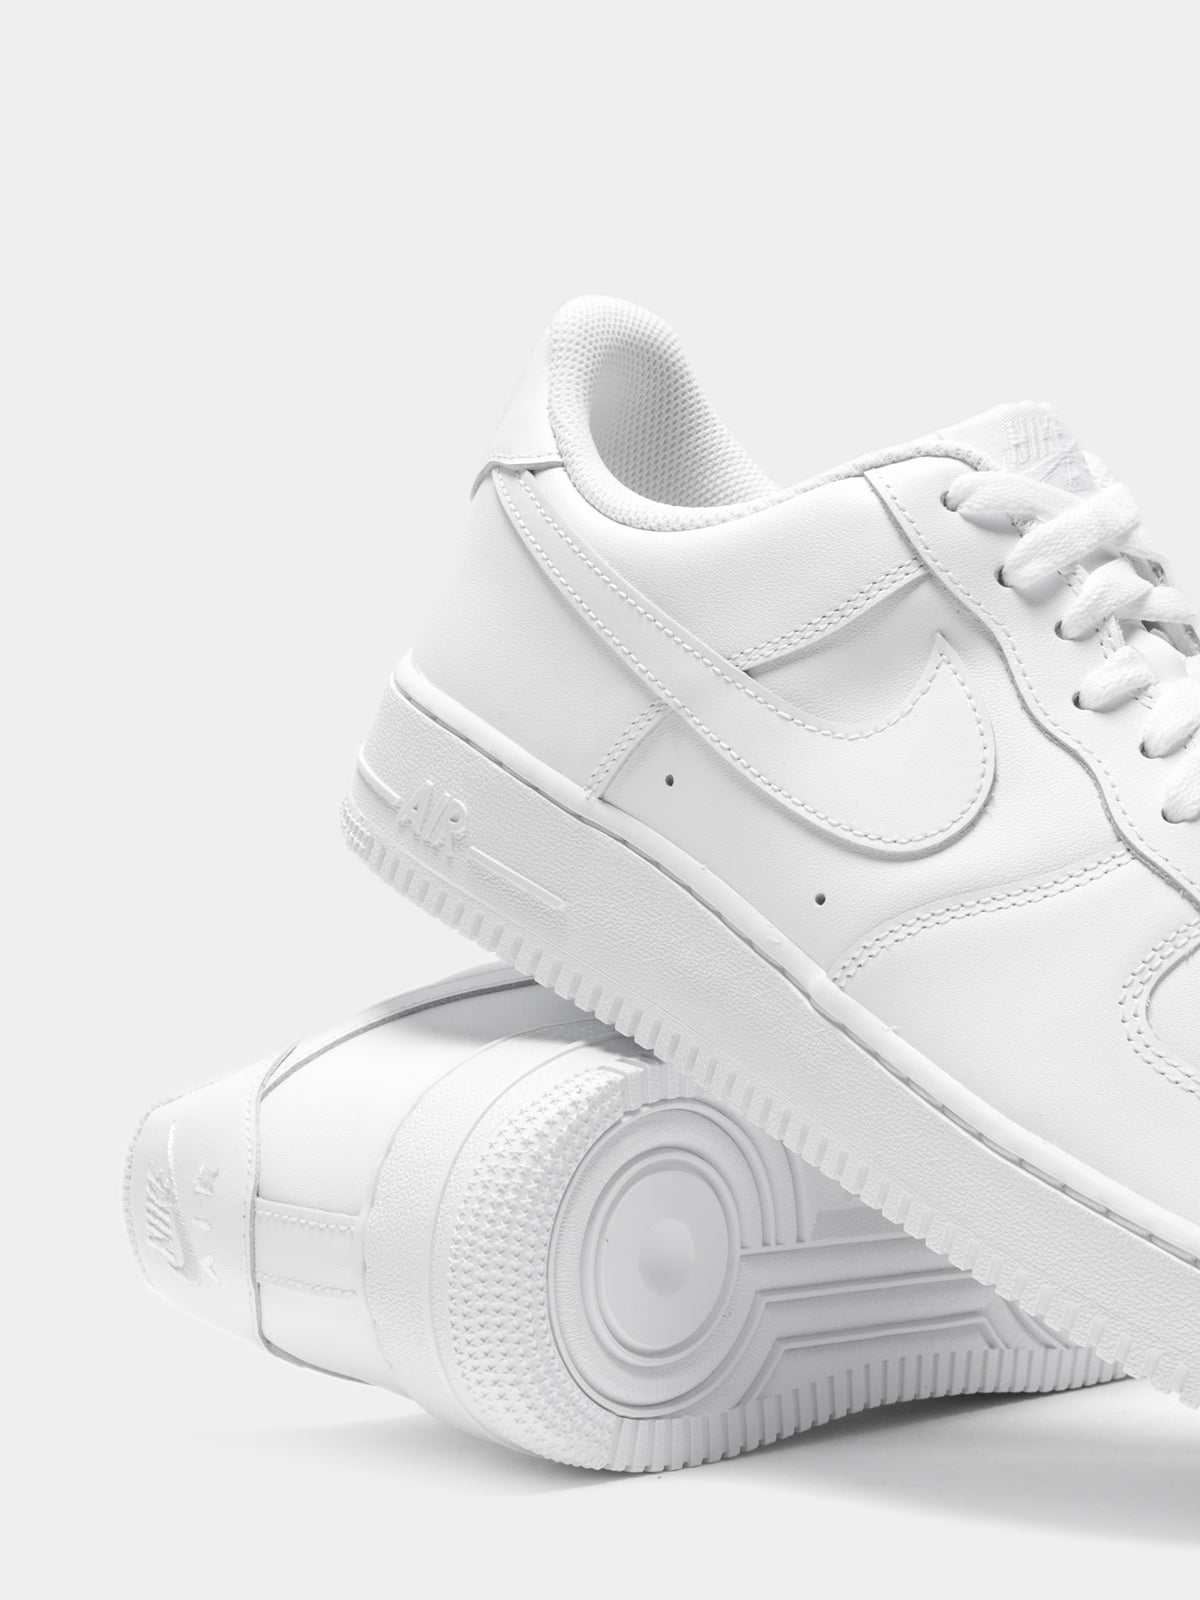 Mens Air Force 1 '07 Sneakers in White